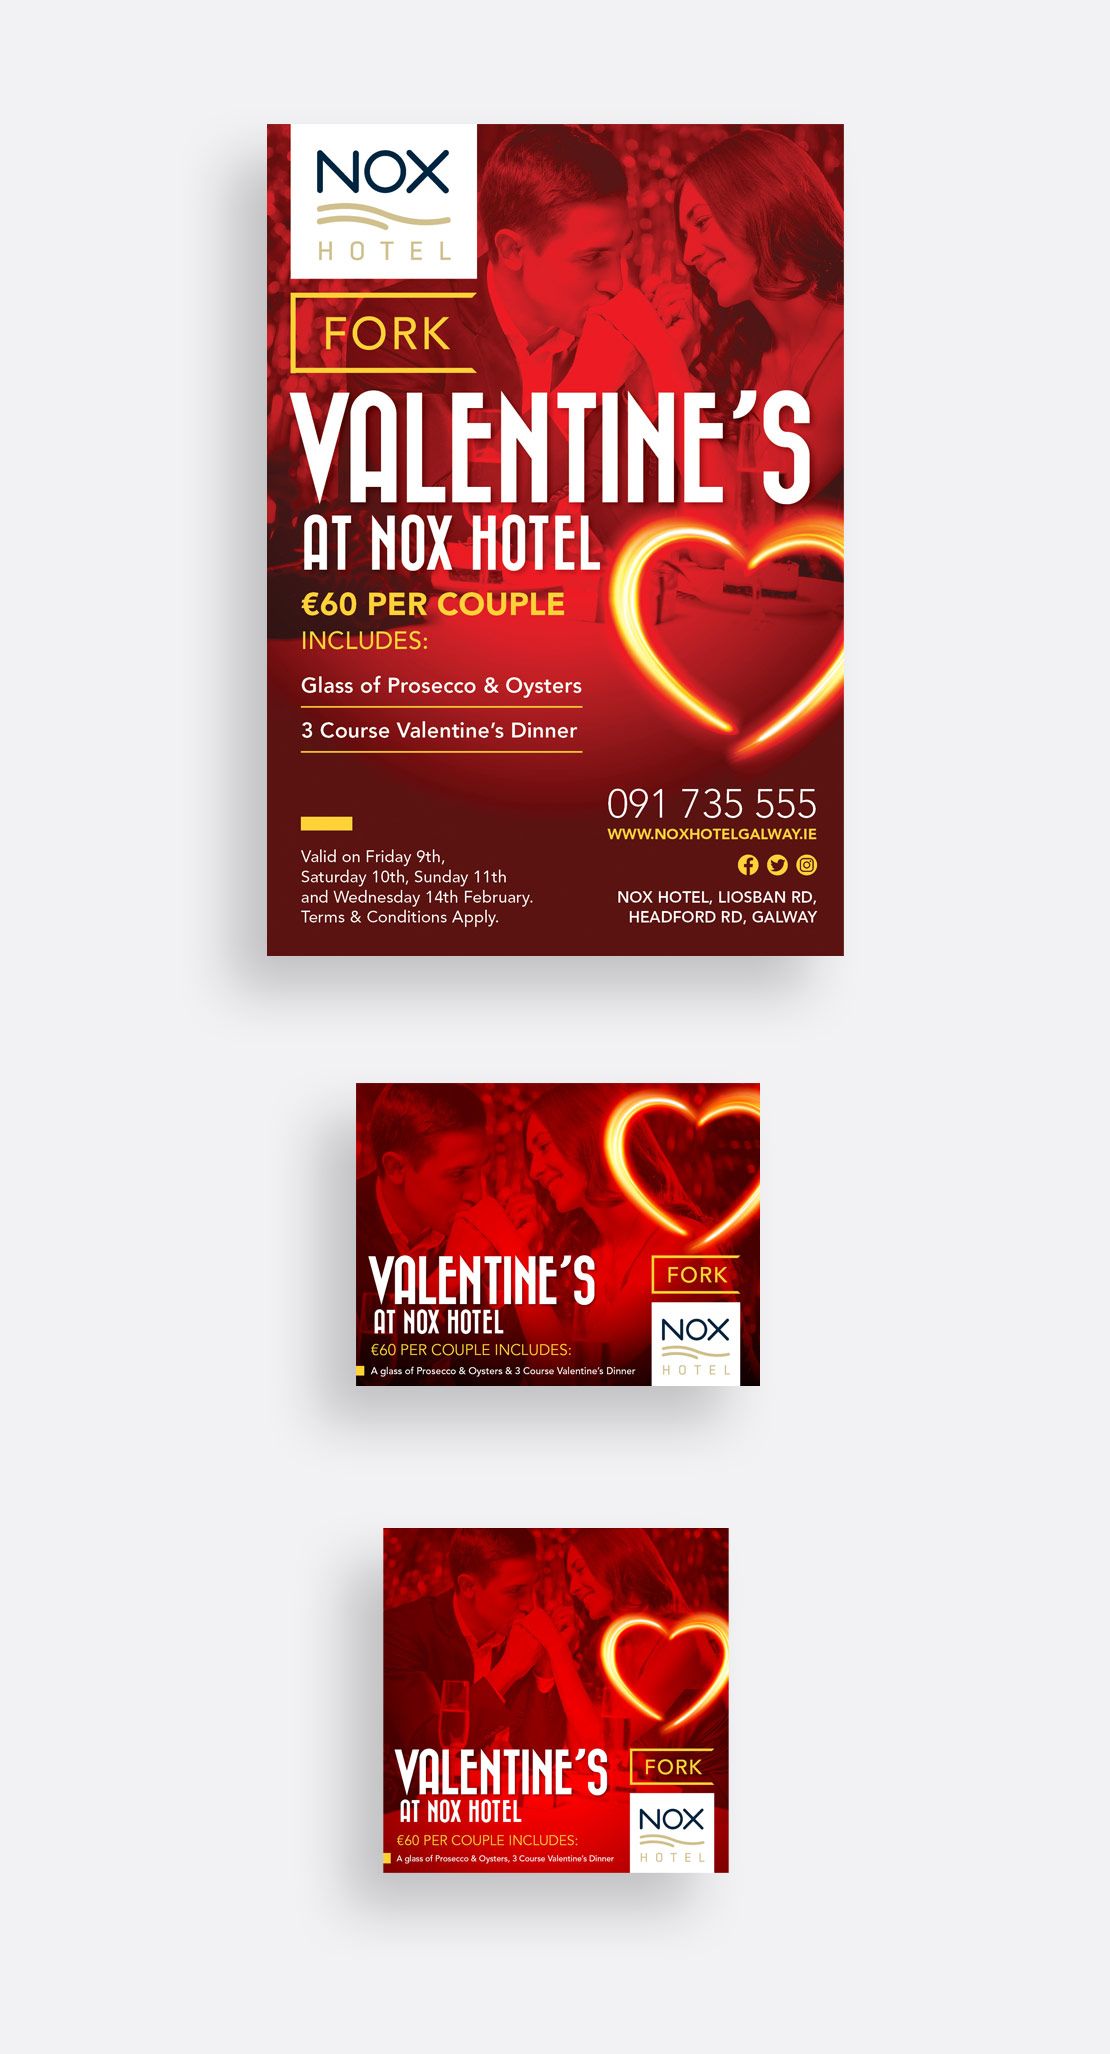 Nox Hotel Valentine's 2017 print and social media campaigns